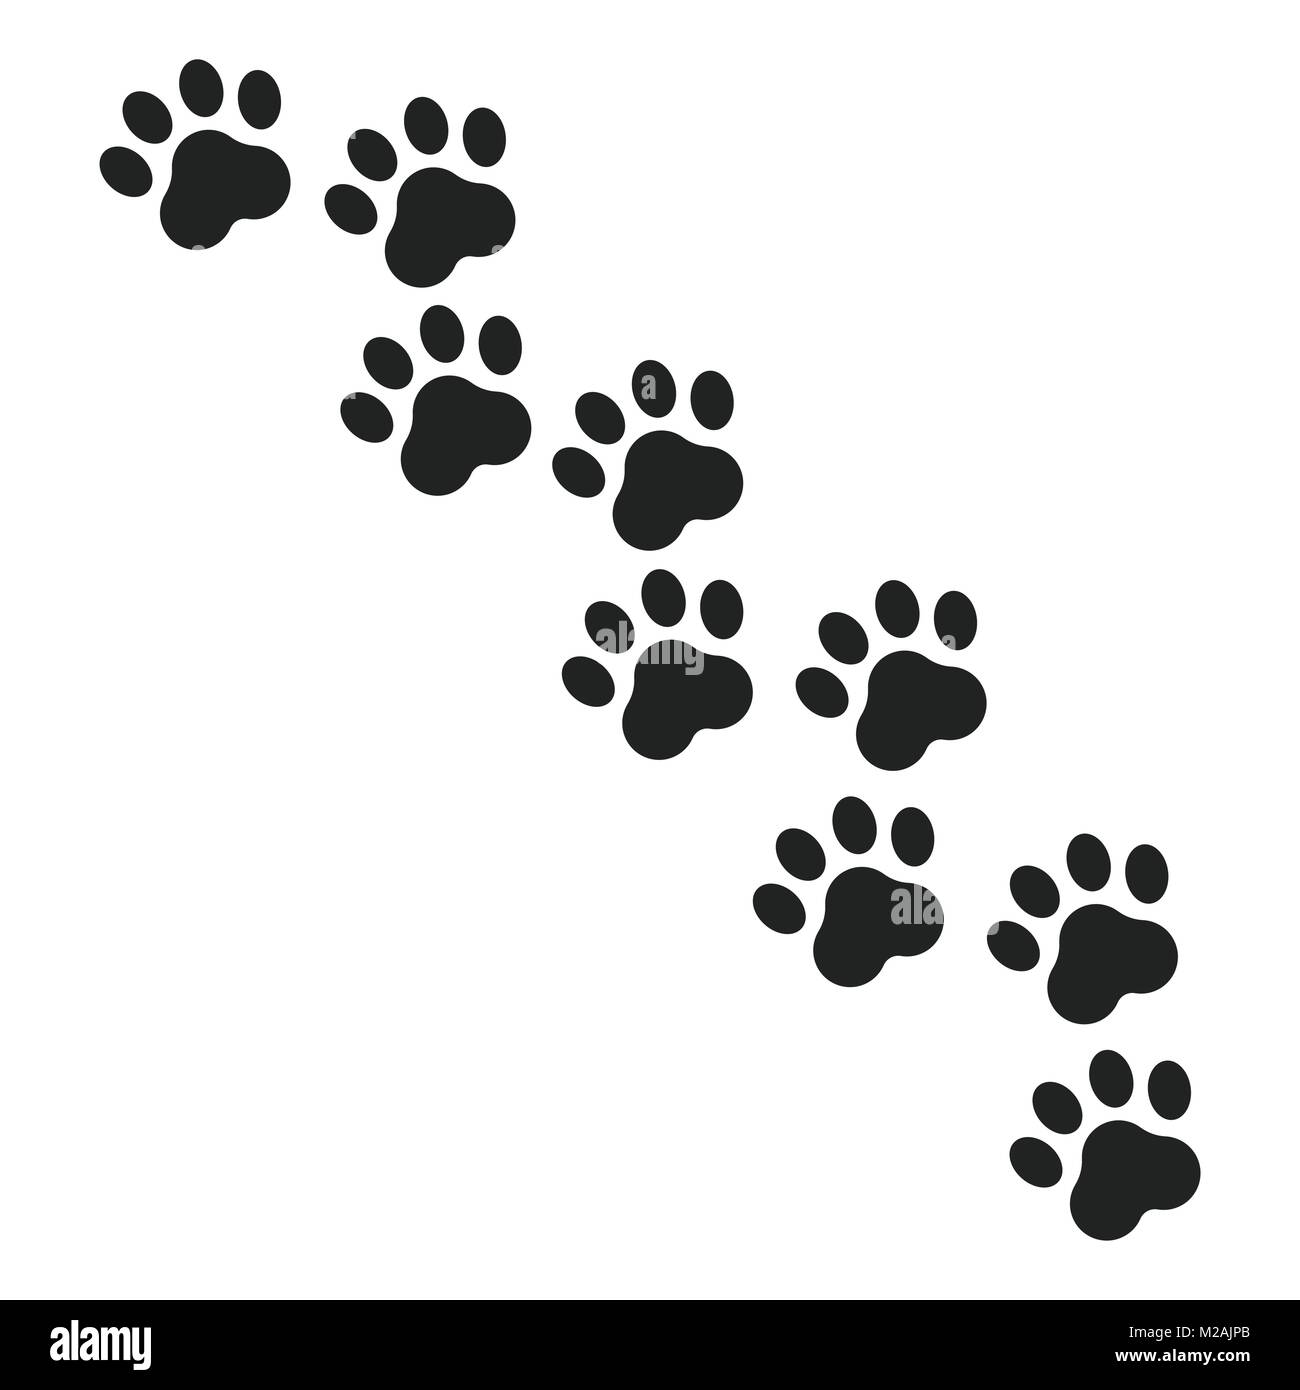 paw print vector icon dog or cat pawprint illustration animal stock vector art   illustration dog paw print vector art dog paw print vector free